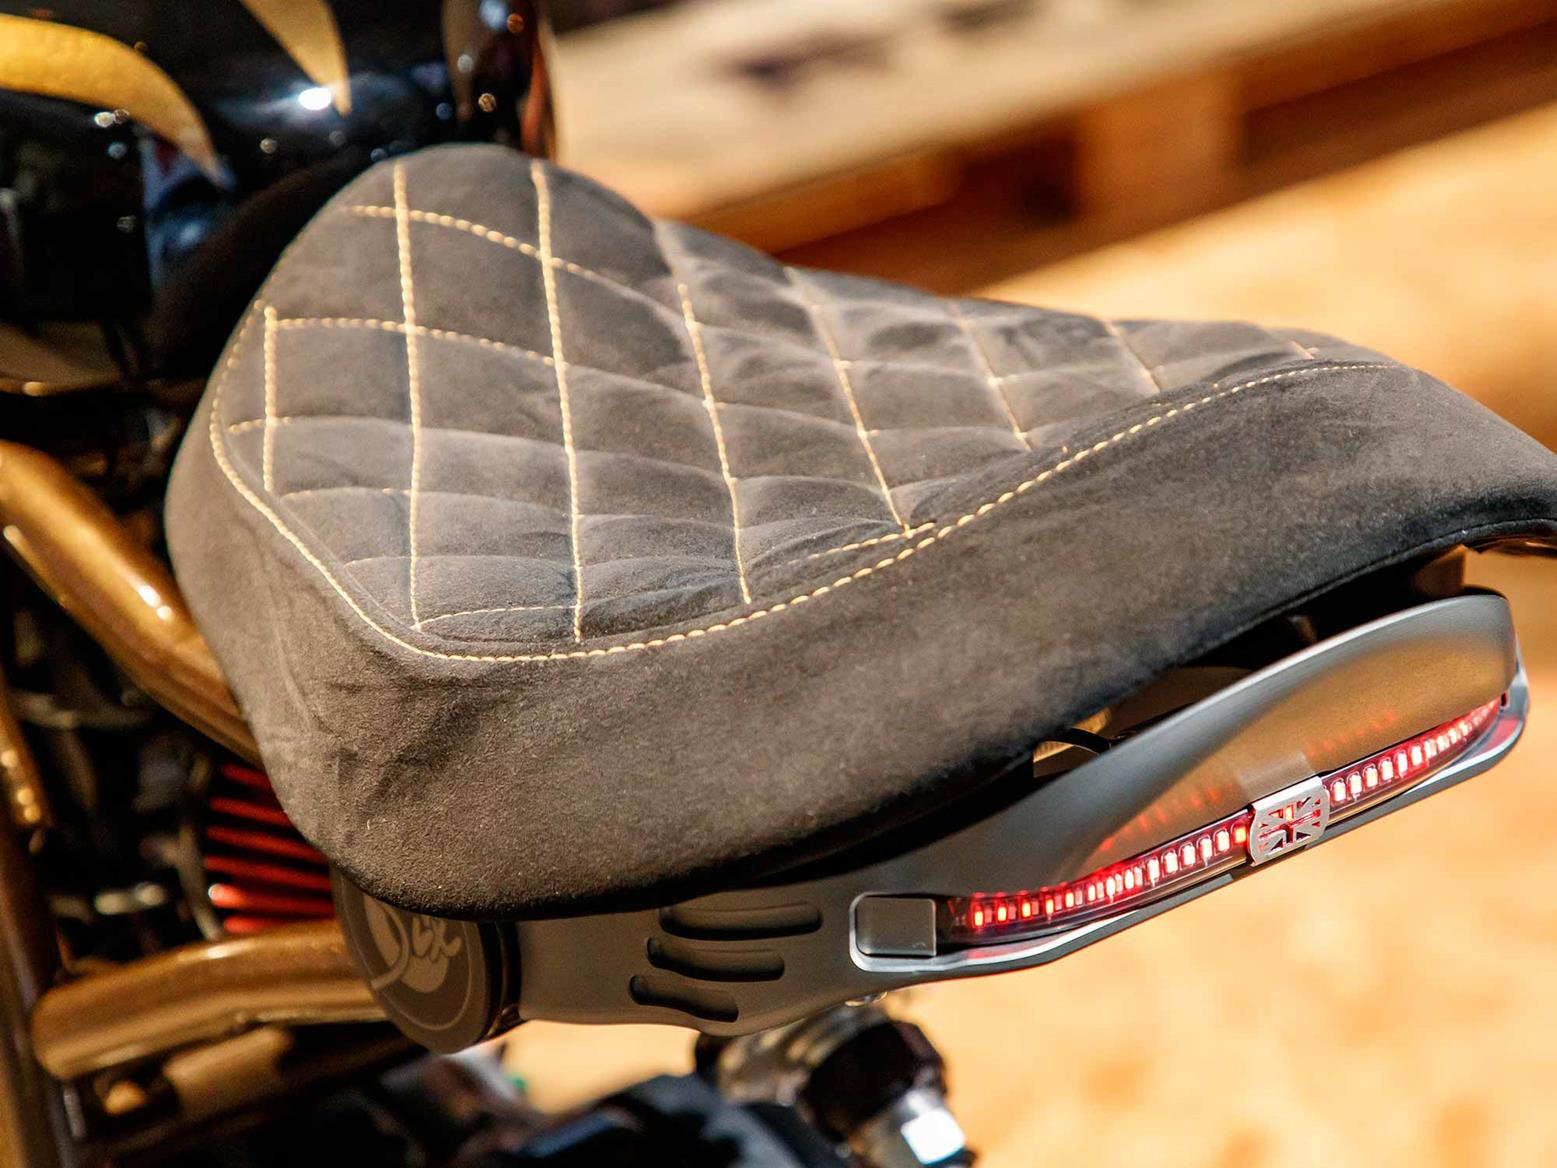 Each seat is finished in alcantara with yellow stitching